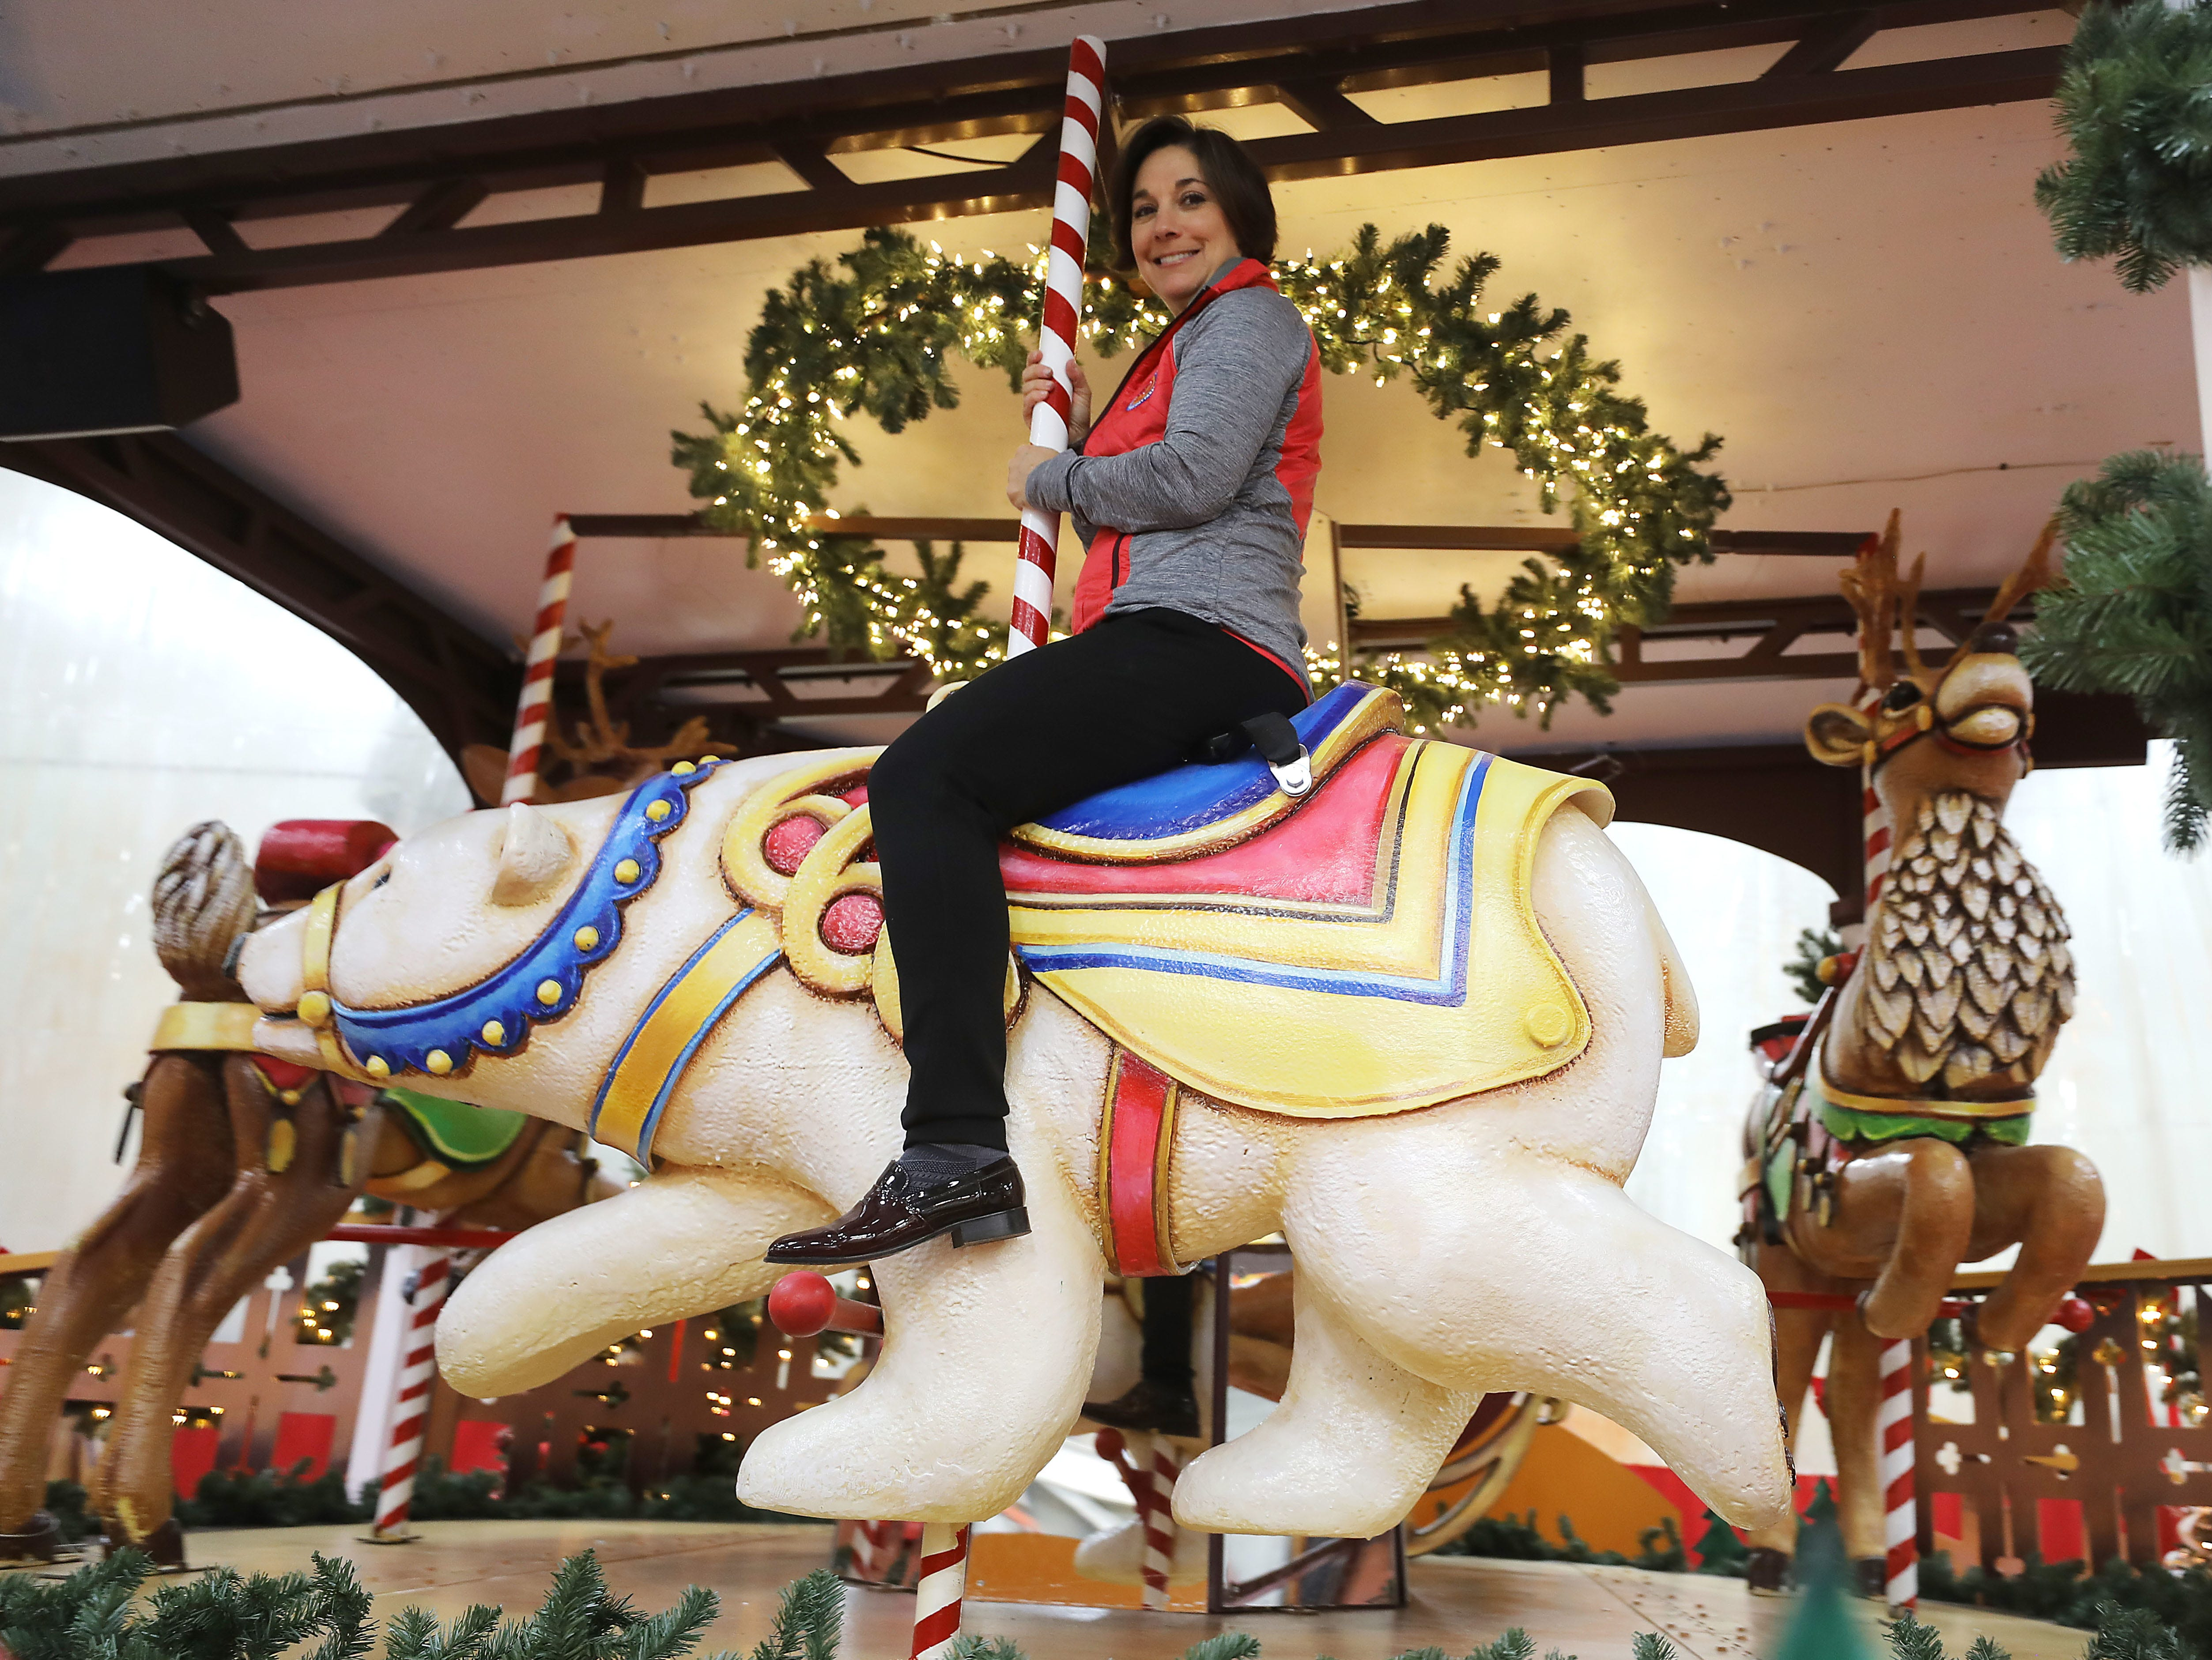 """CHRIS PEDOTA A polar bear character is part of the new Balsam Hill """"Deck the Halls"""" float. Amy Kule, vice president of Macy's Parade and Entertainment Group, on a polar bear figure that is part of the new Balsam Hill """"Deck the Halls"""" float"""